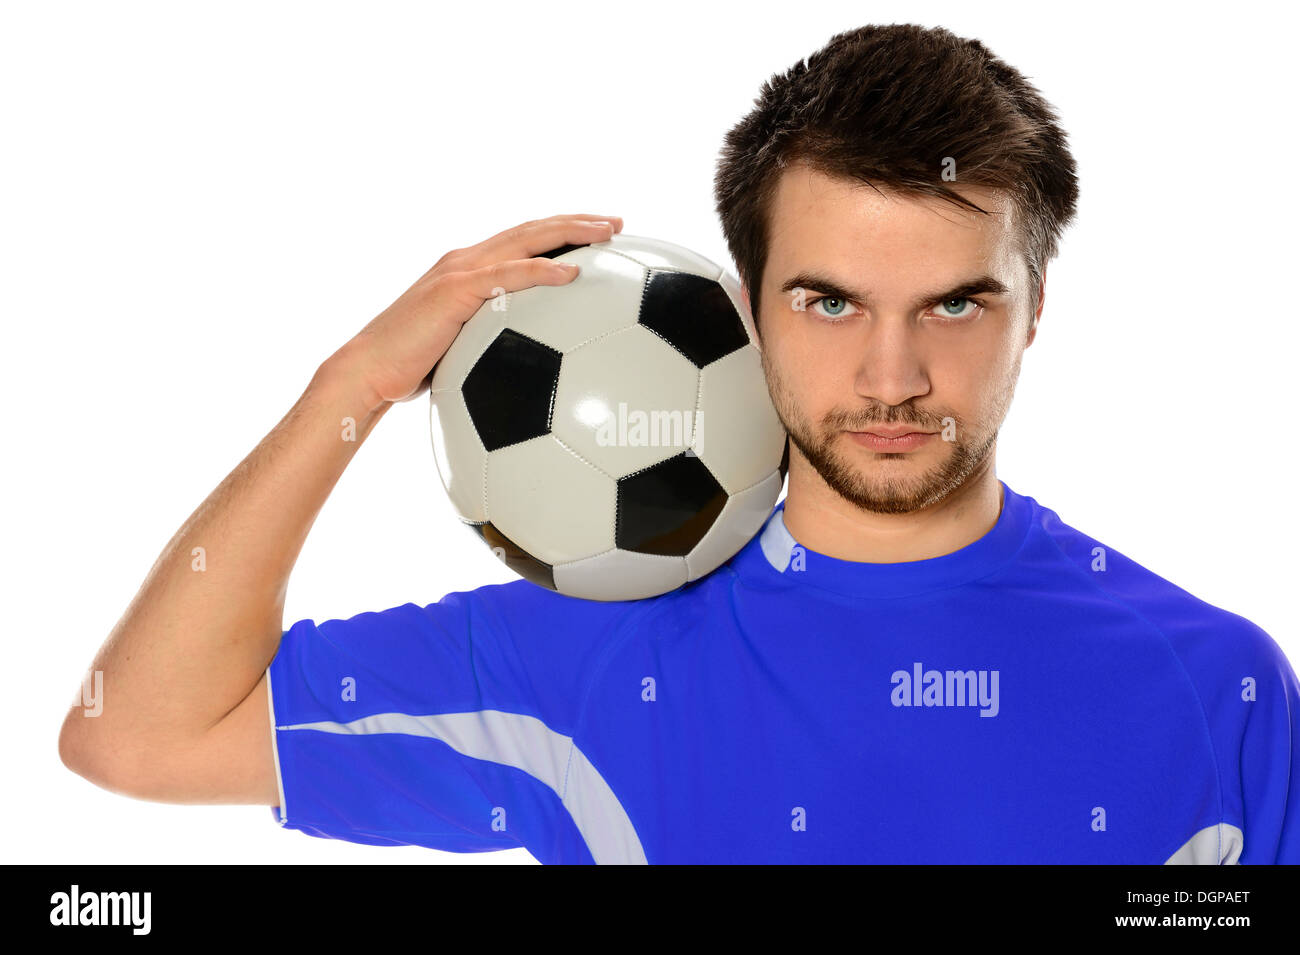 Portrait of young soccer player holding ball isolated over white background - Stock Image